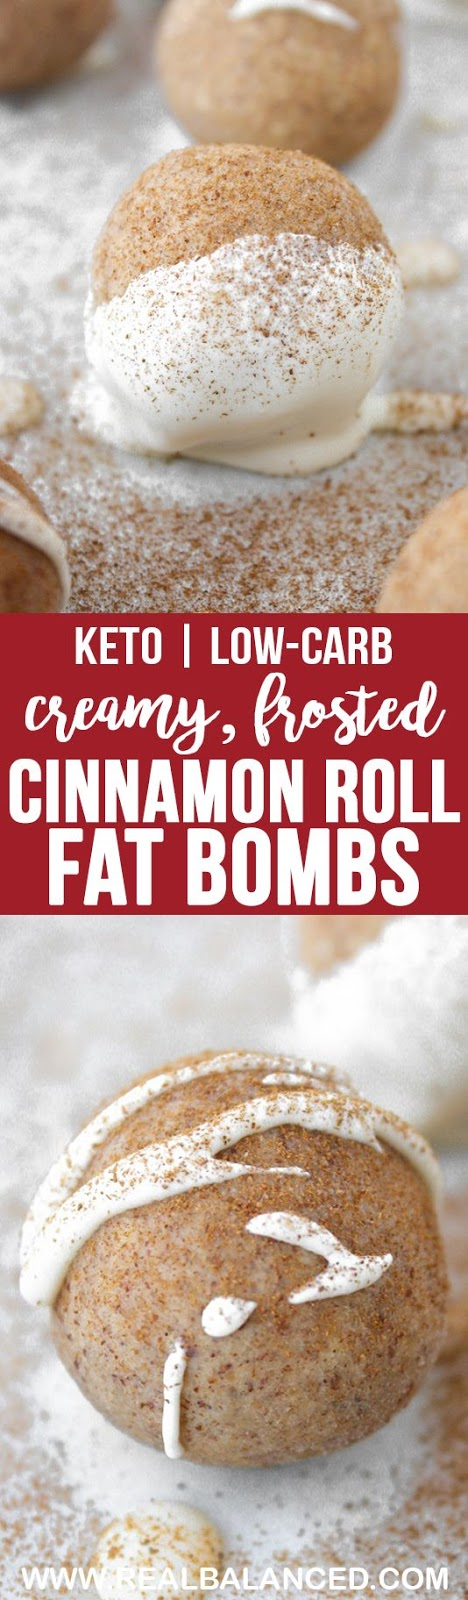 CINNAMON ROLL FAT BOMBS